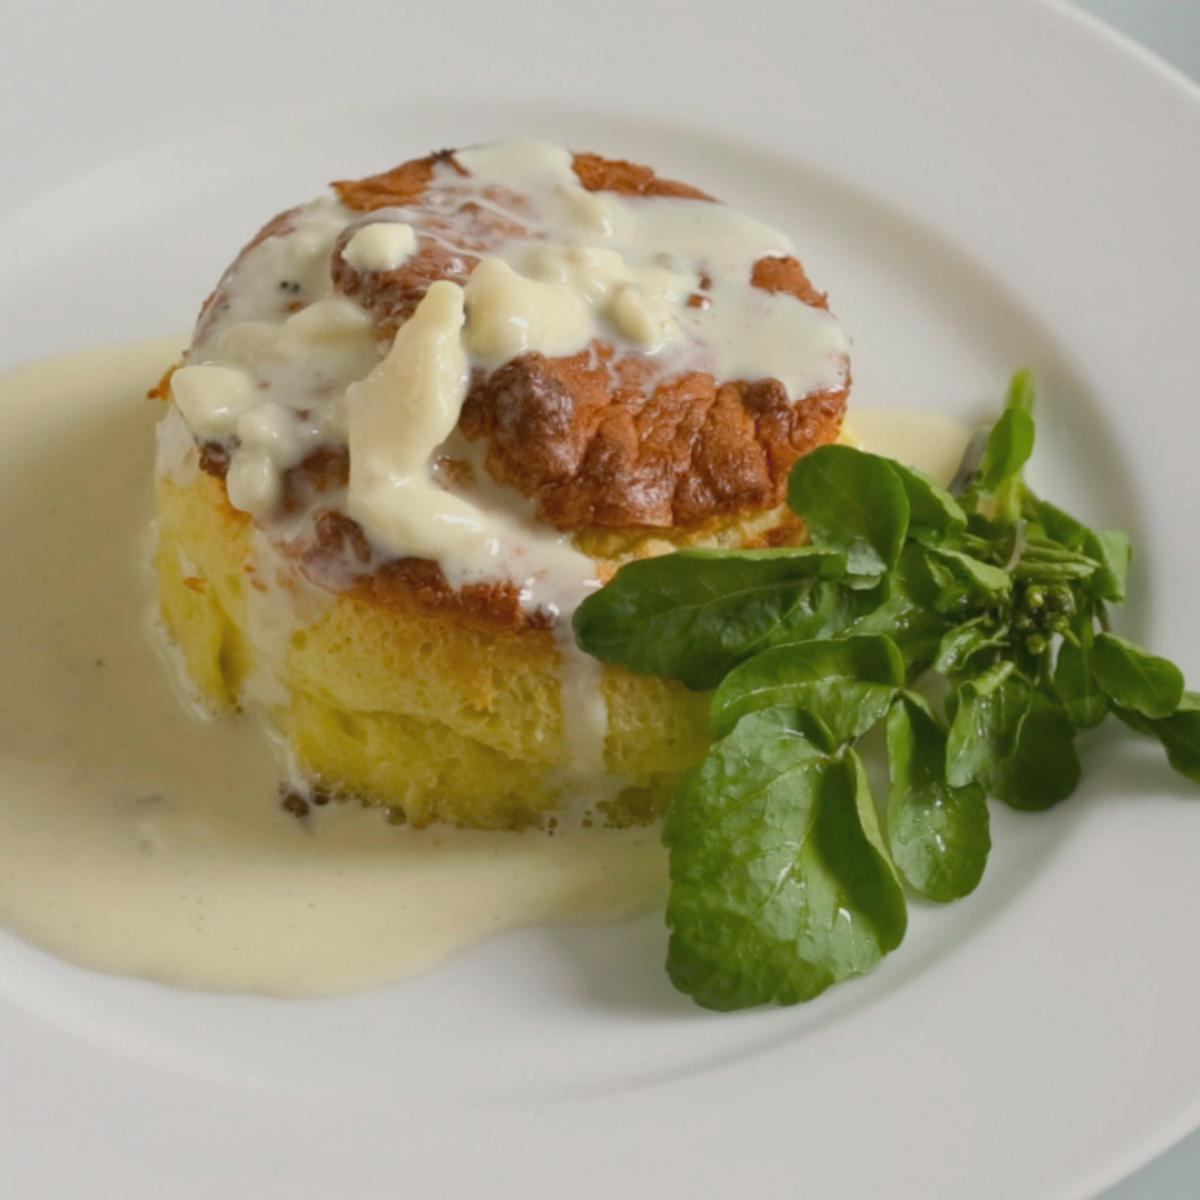 Cs twice baked roquefort souffles